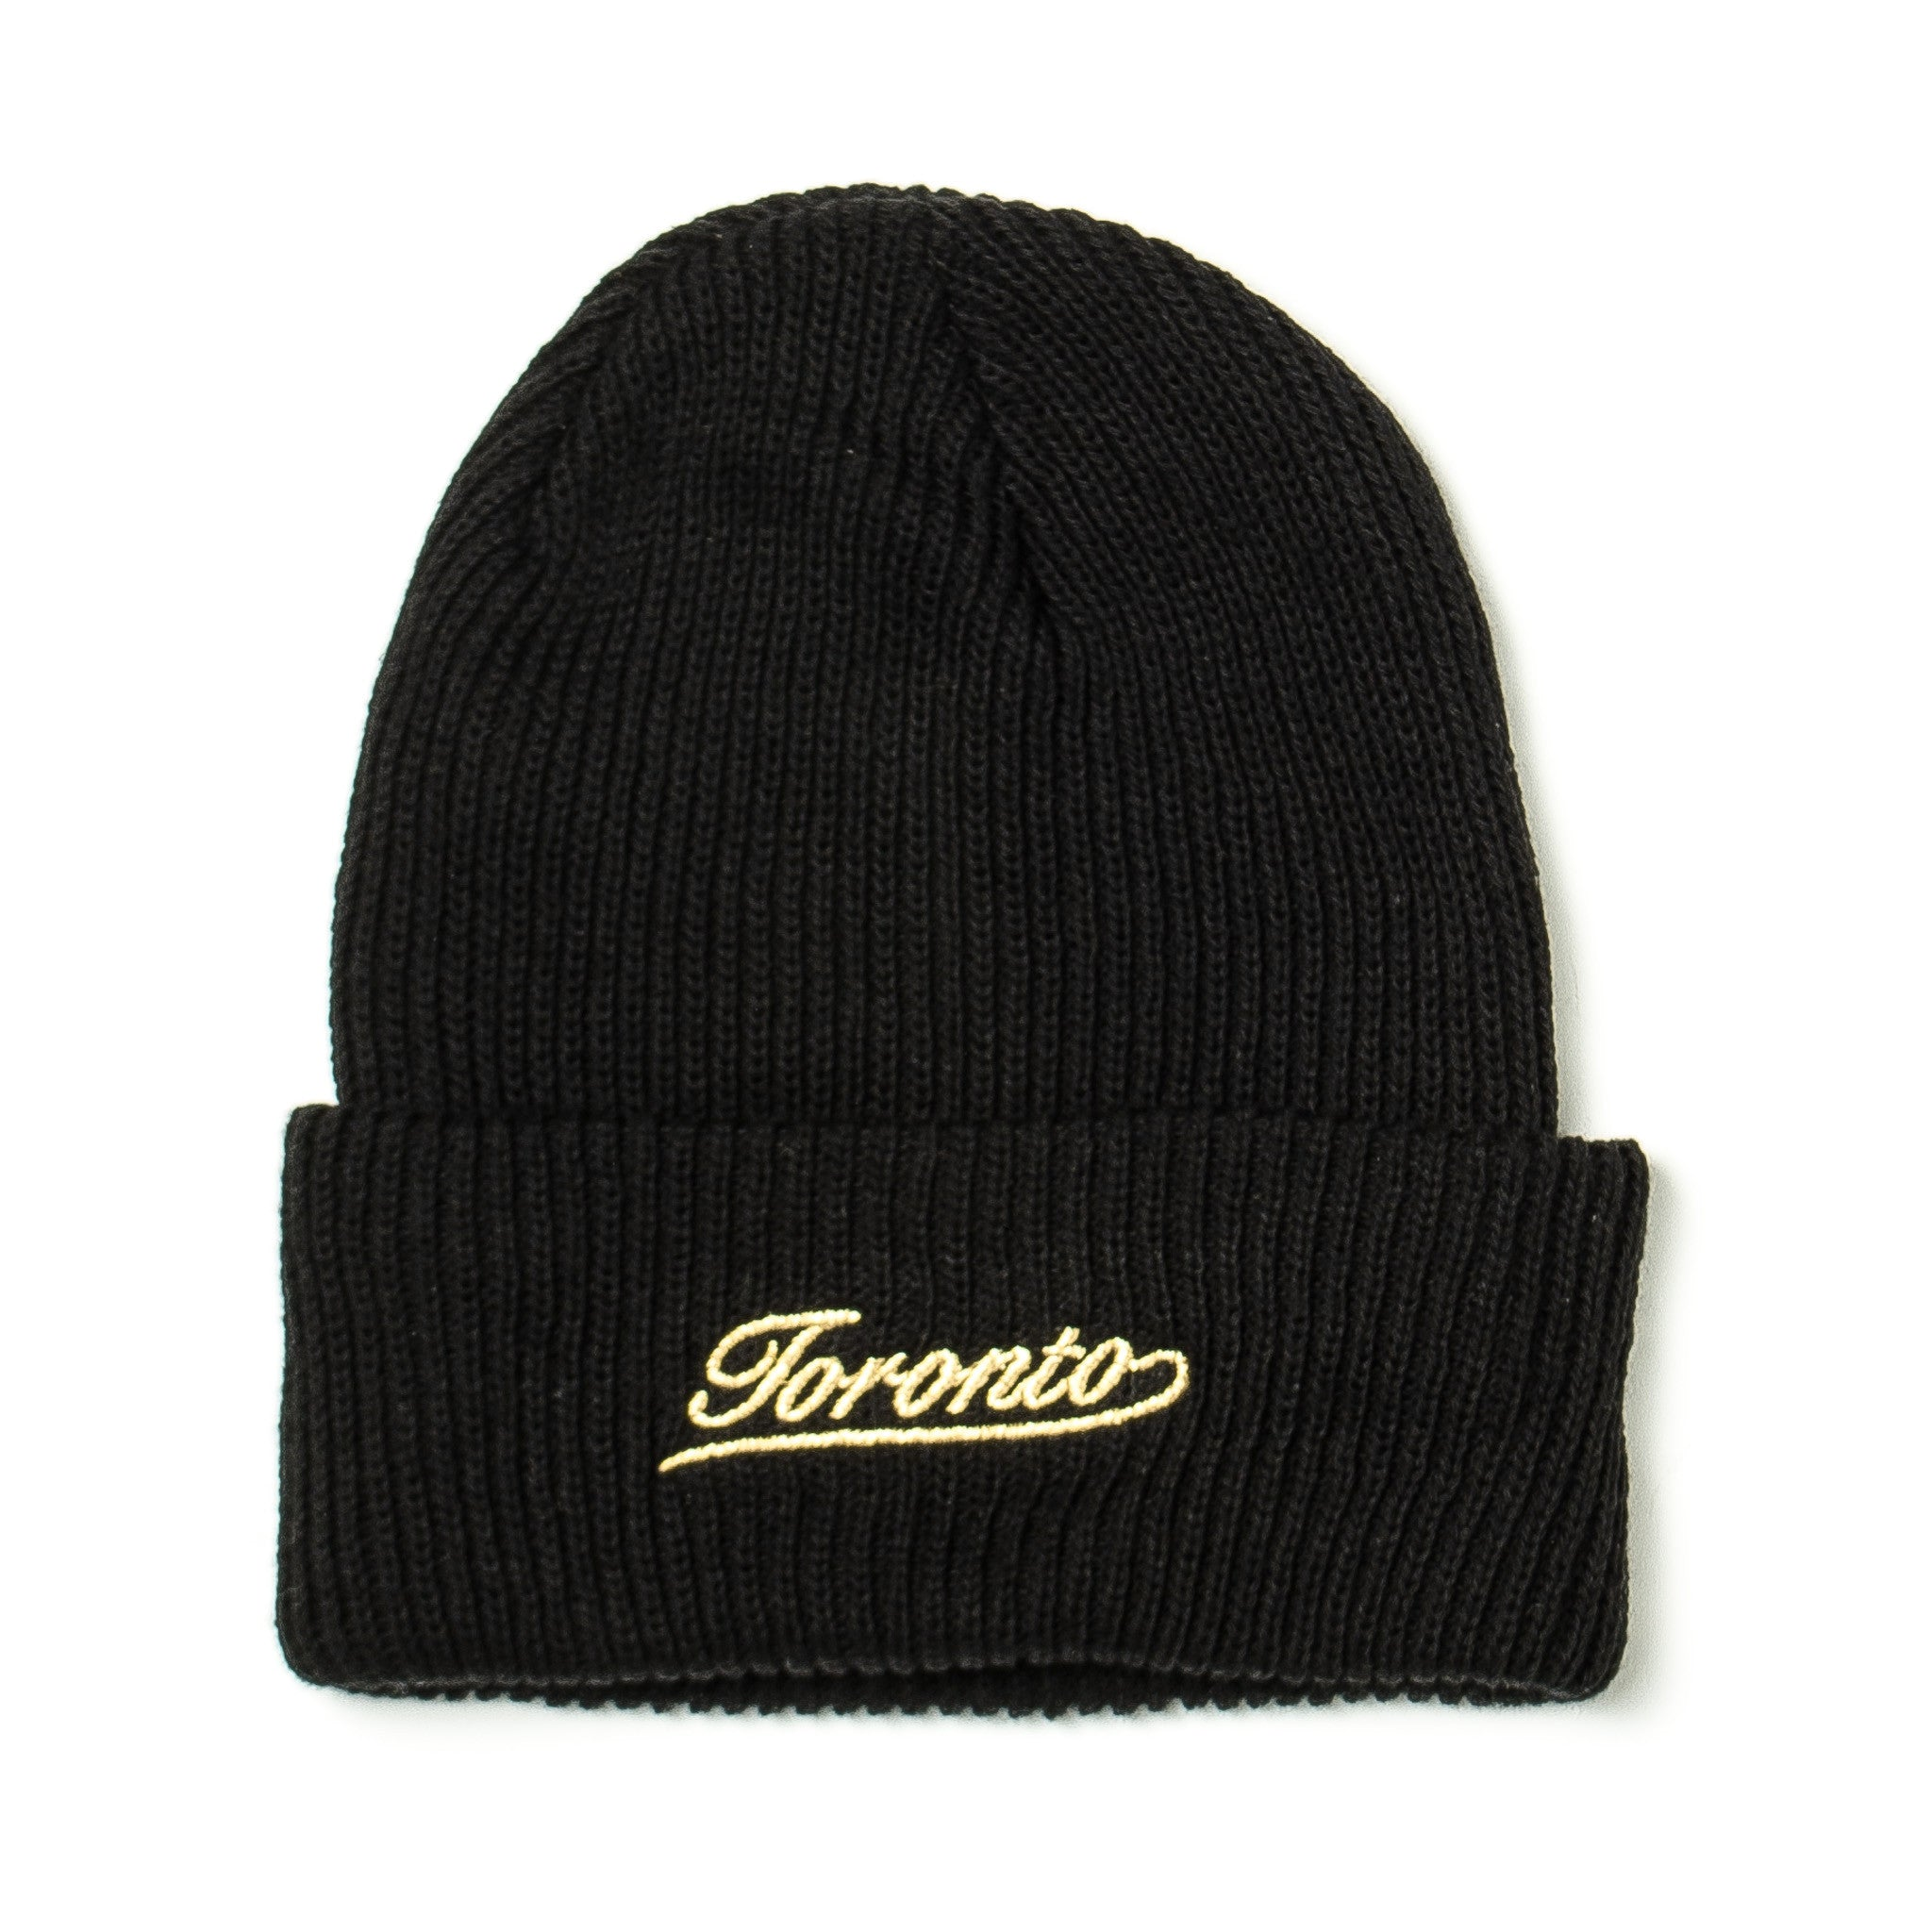 Capsule Toronto Beanie AS Black/Gold